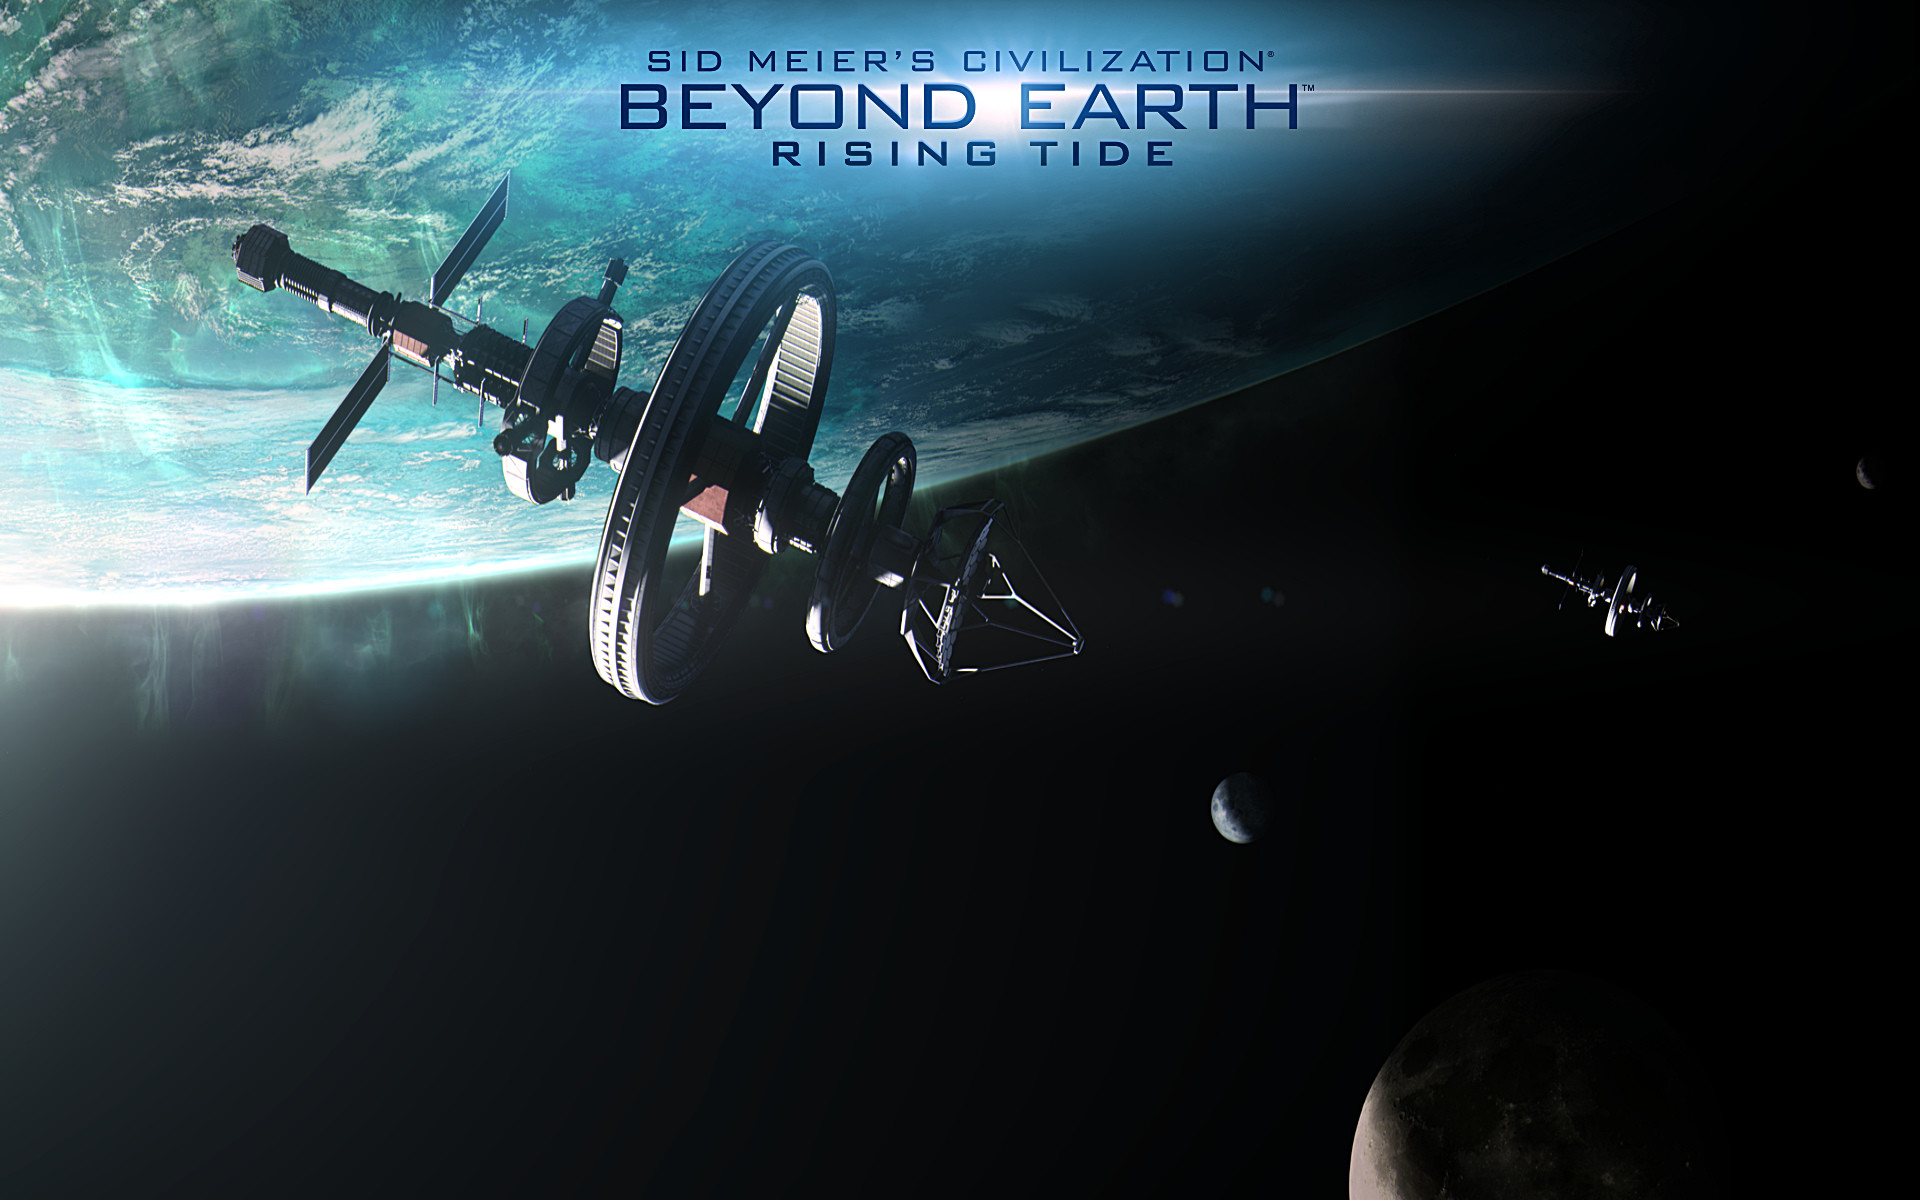 earth and beyond